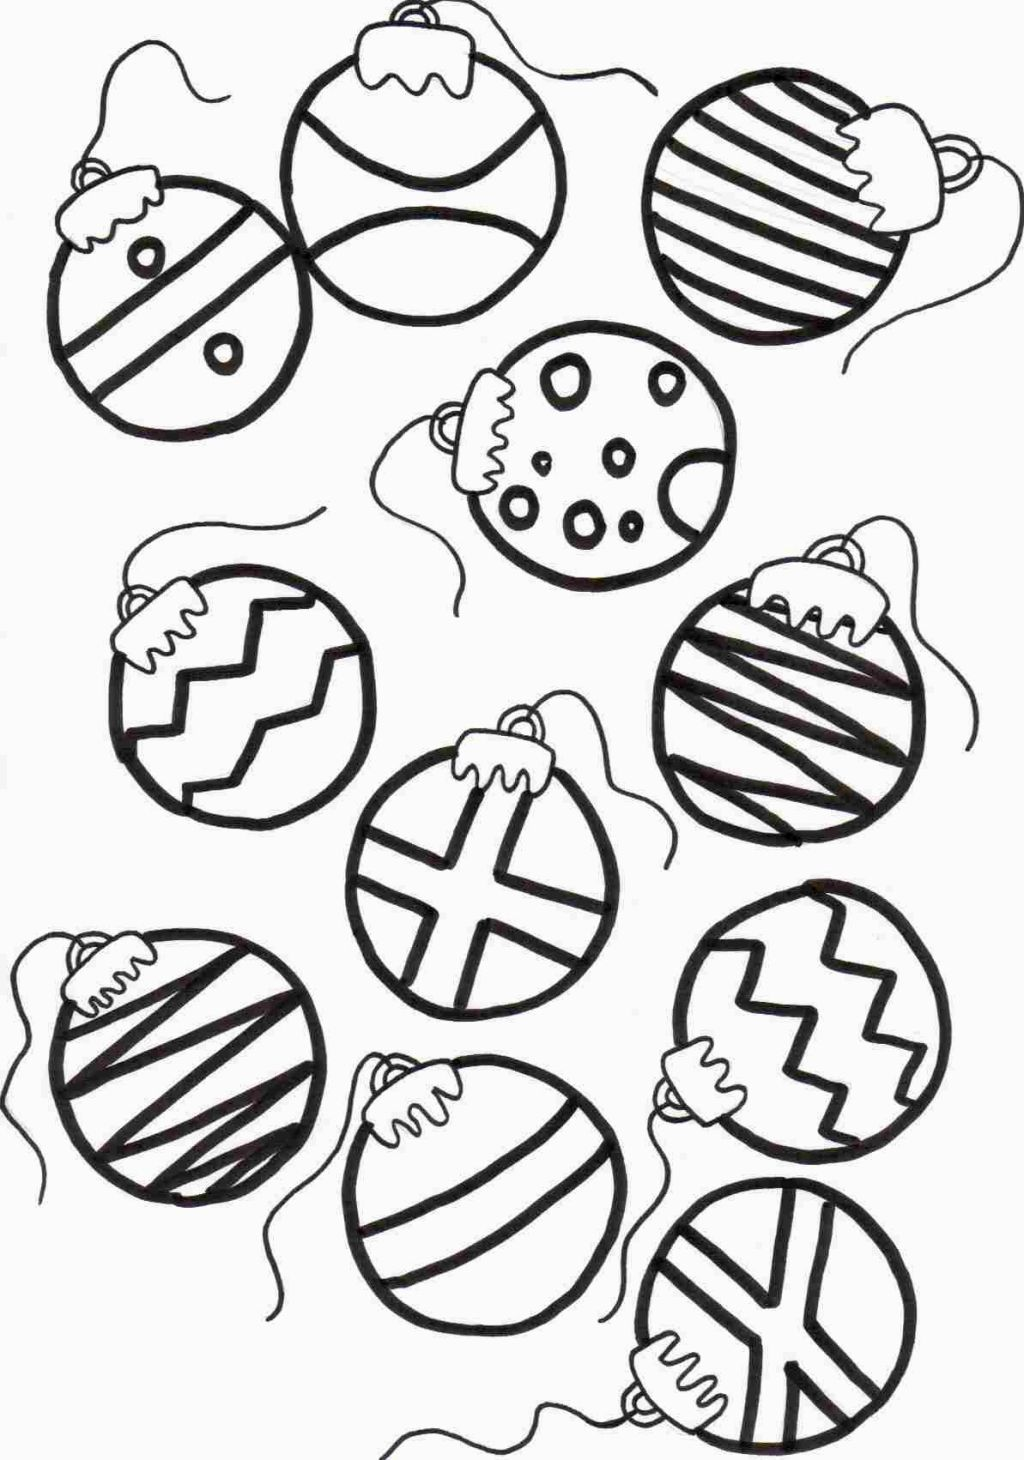 Christmas ornament coloring page coloring pages pinterest